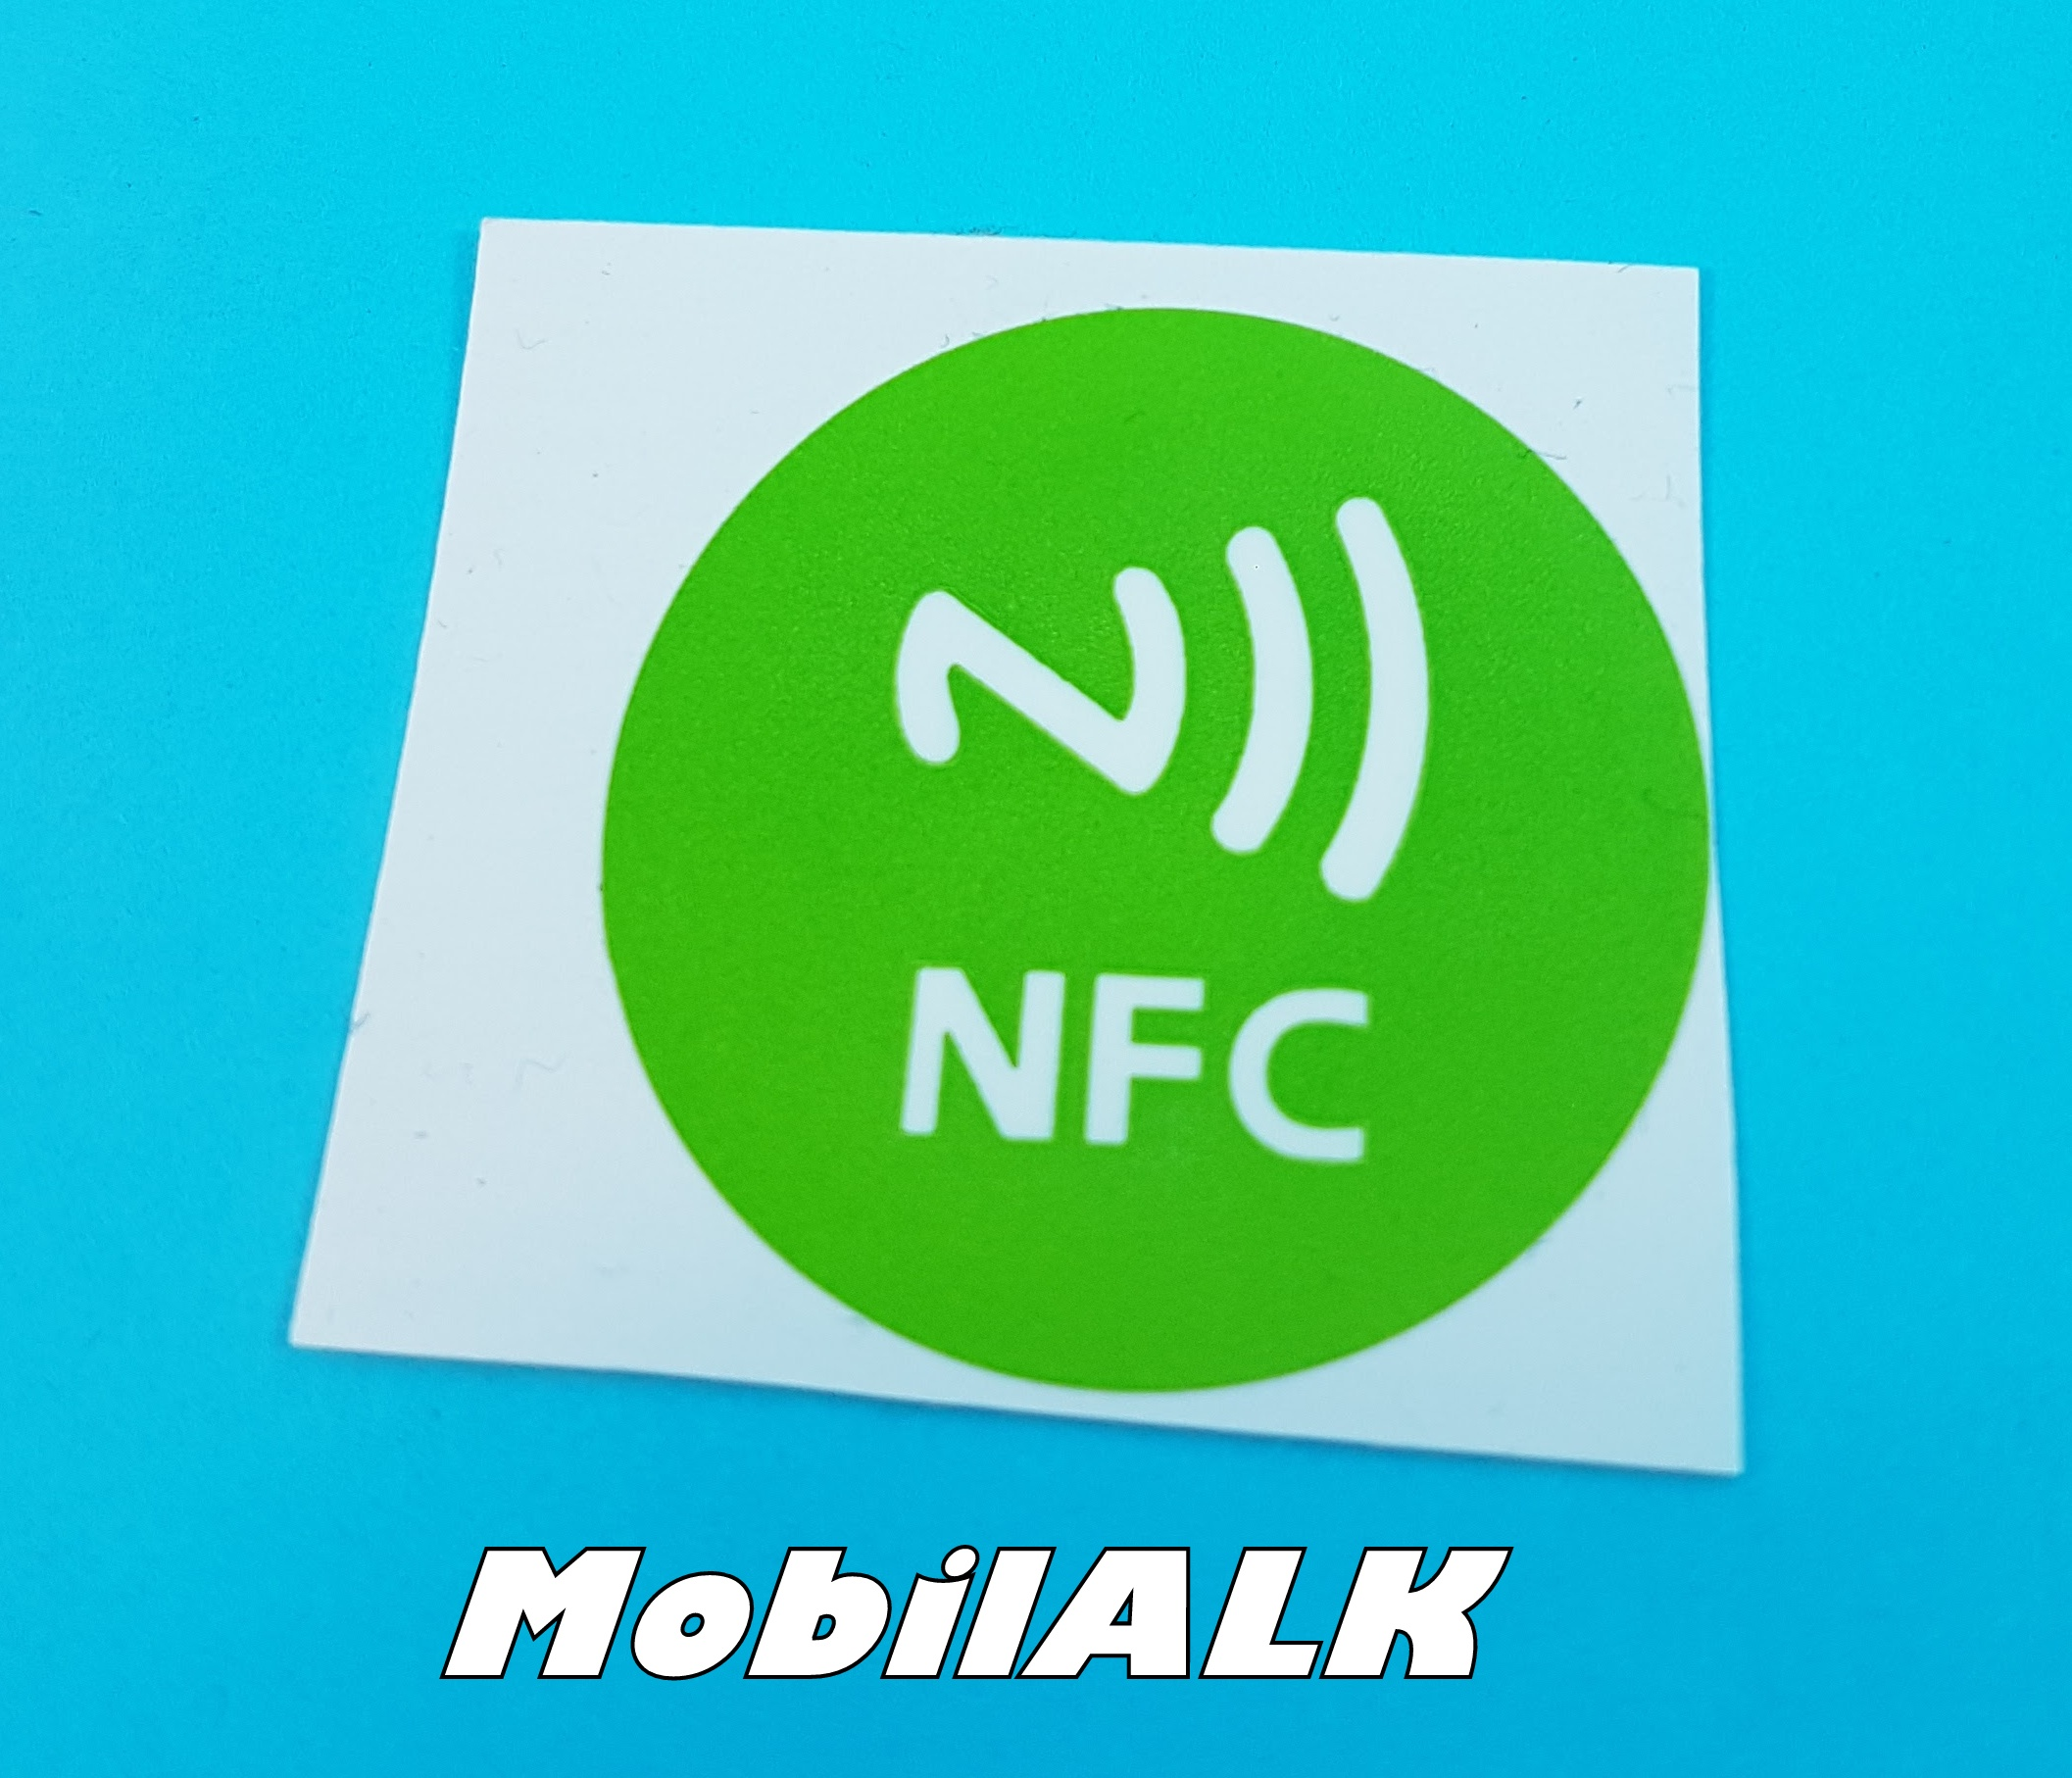 NFC Near field communication matrica sticker Android Windows iOS Új zöld